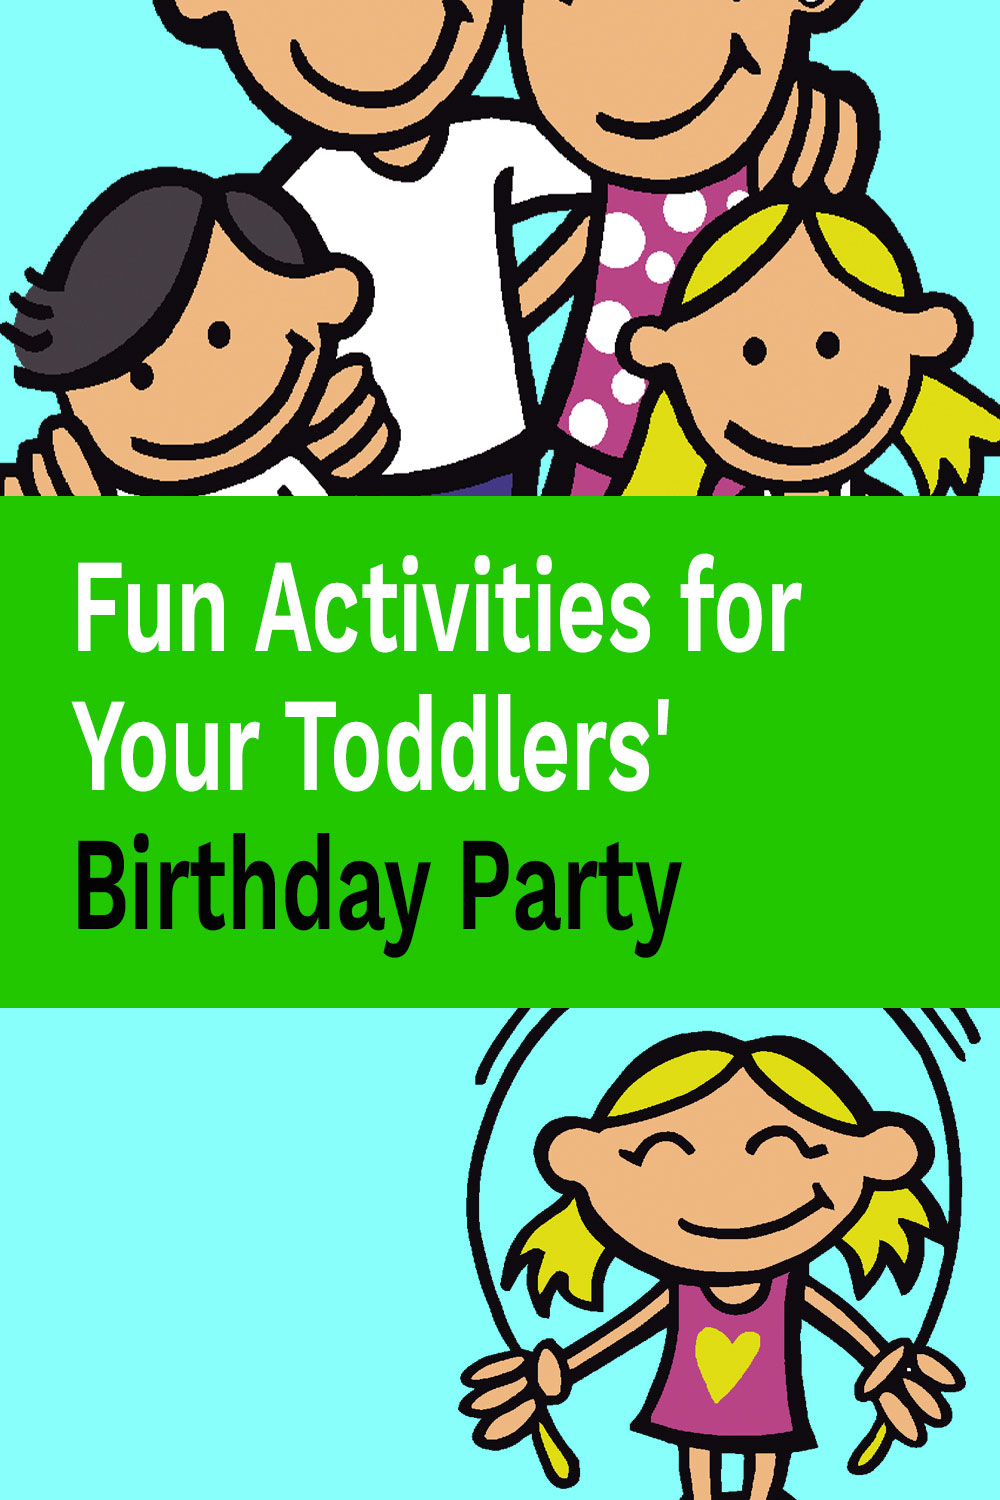 Fun Activities for Your Toddlers' Birthday Party